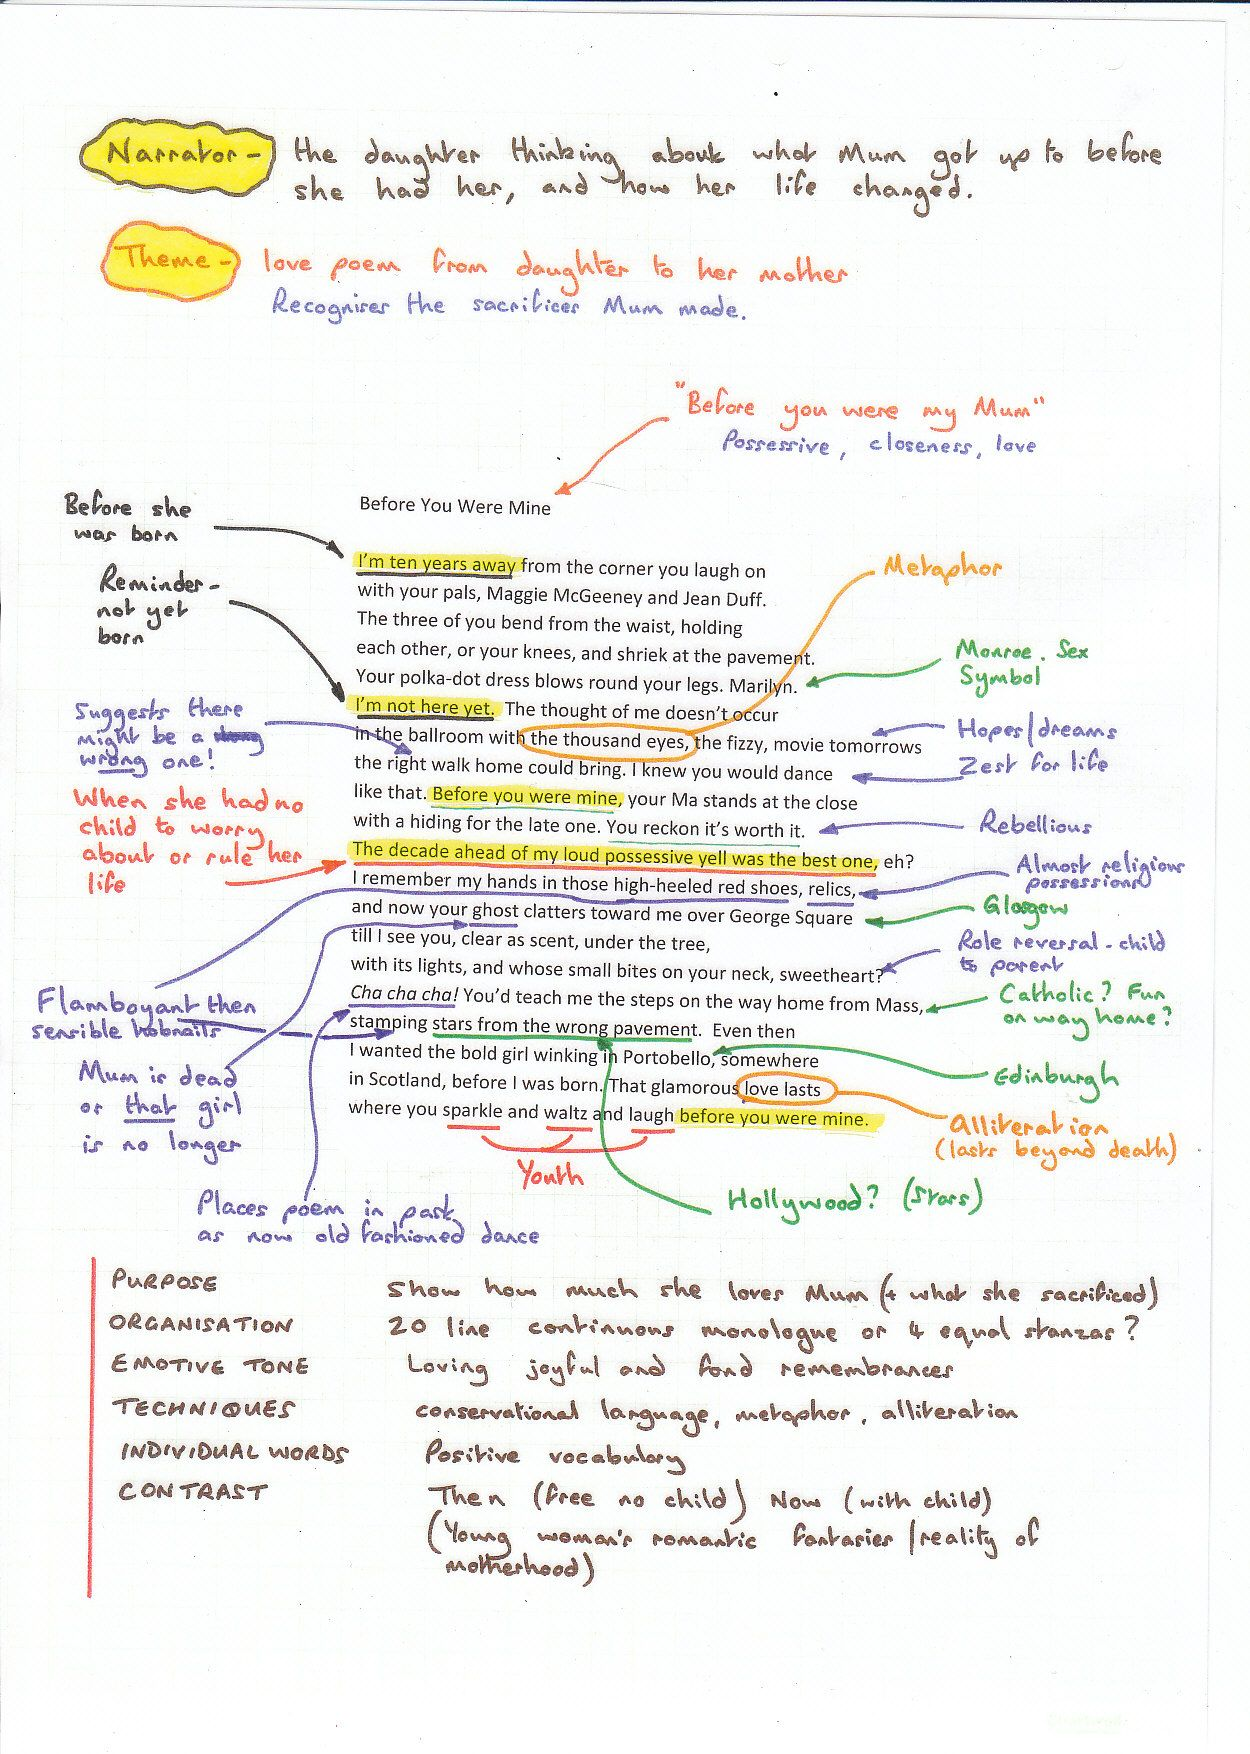 Pictures Of Annotated Texts Before You Were Mine